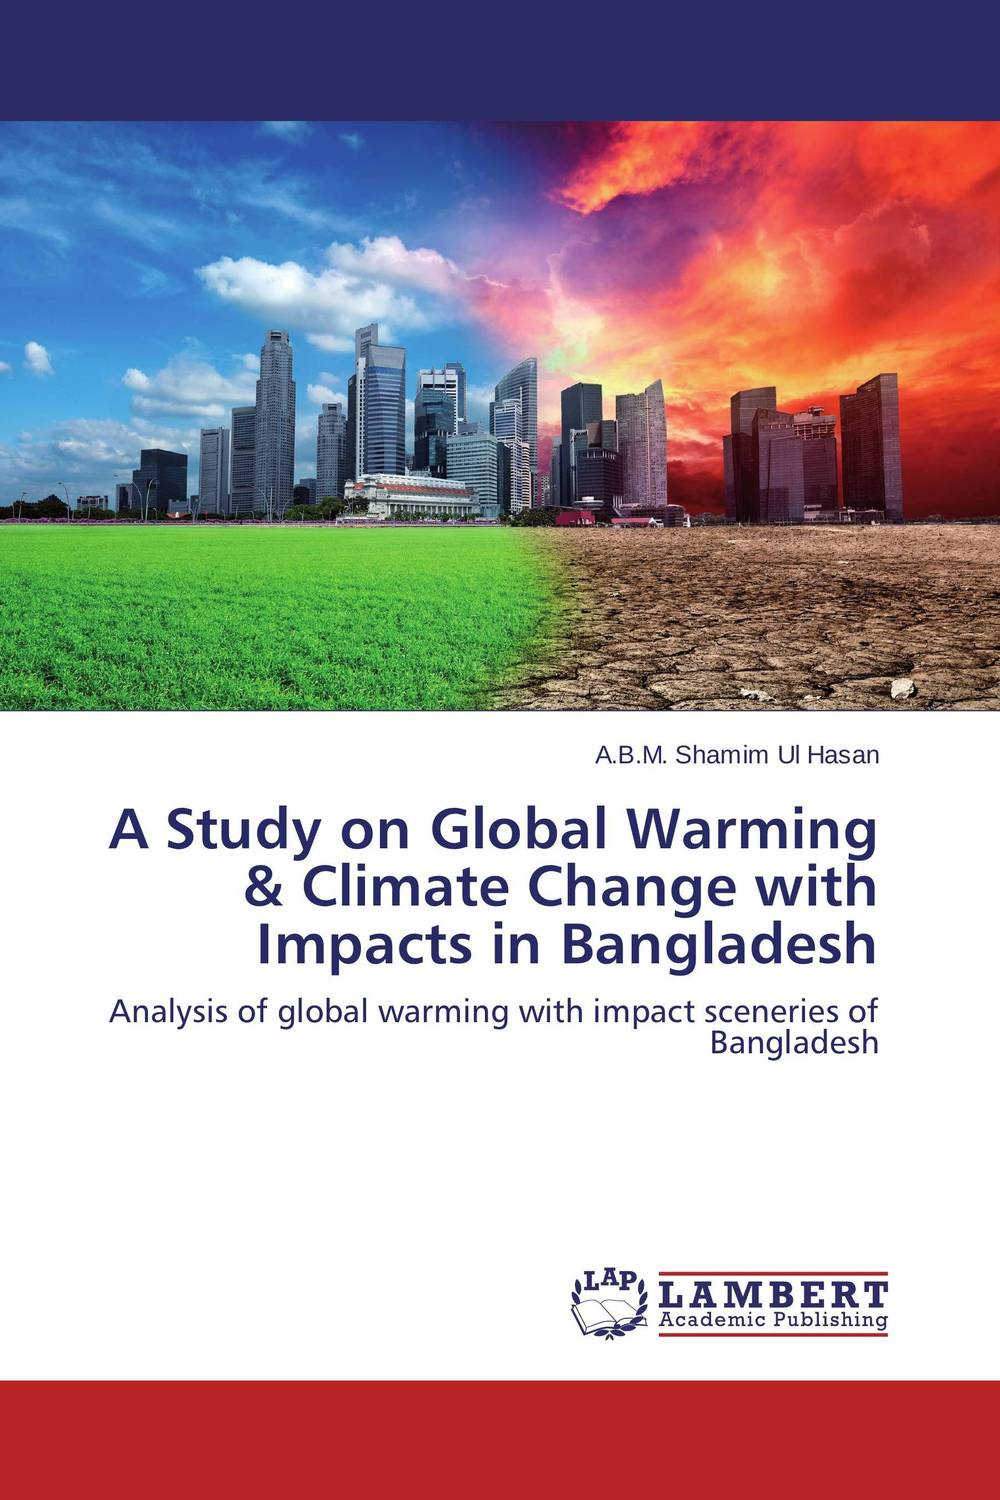 A Study on Global Warming & Climate Change with Impacts in Bangladesh administrative corruption in bangladesh a behavioural study